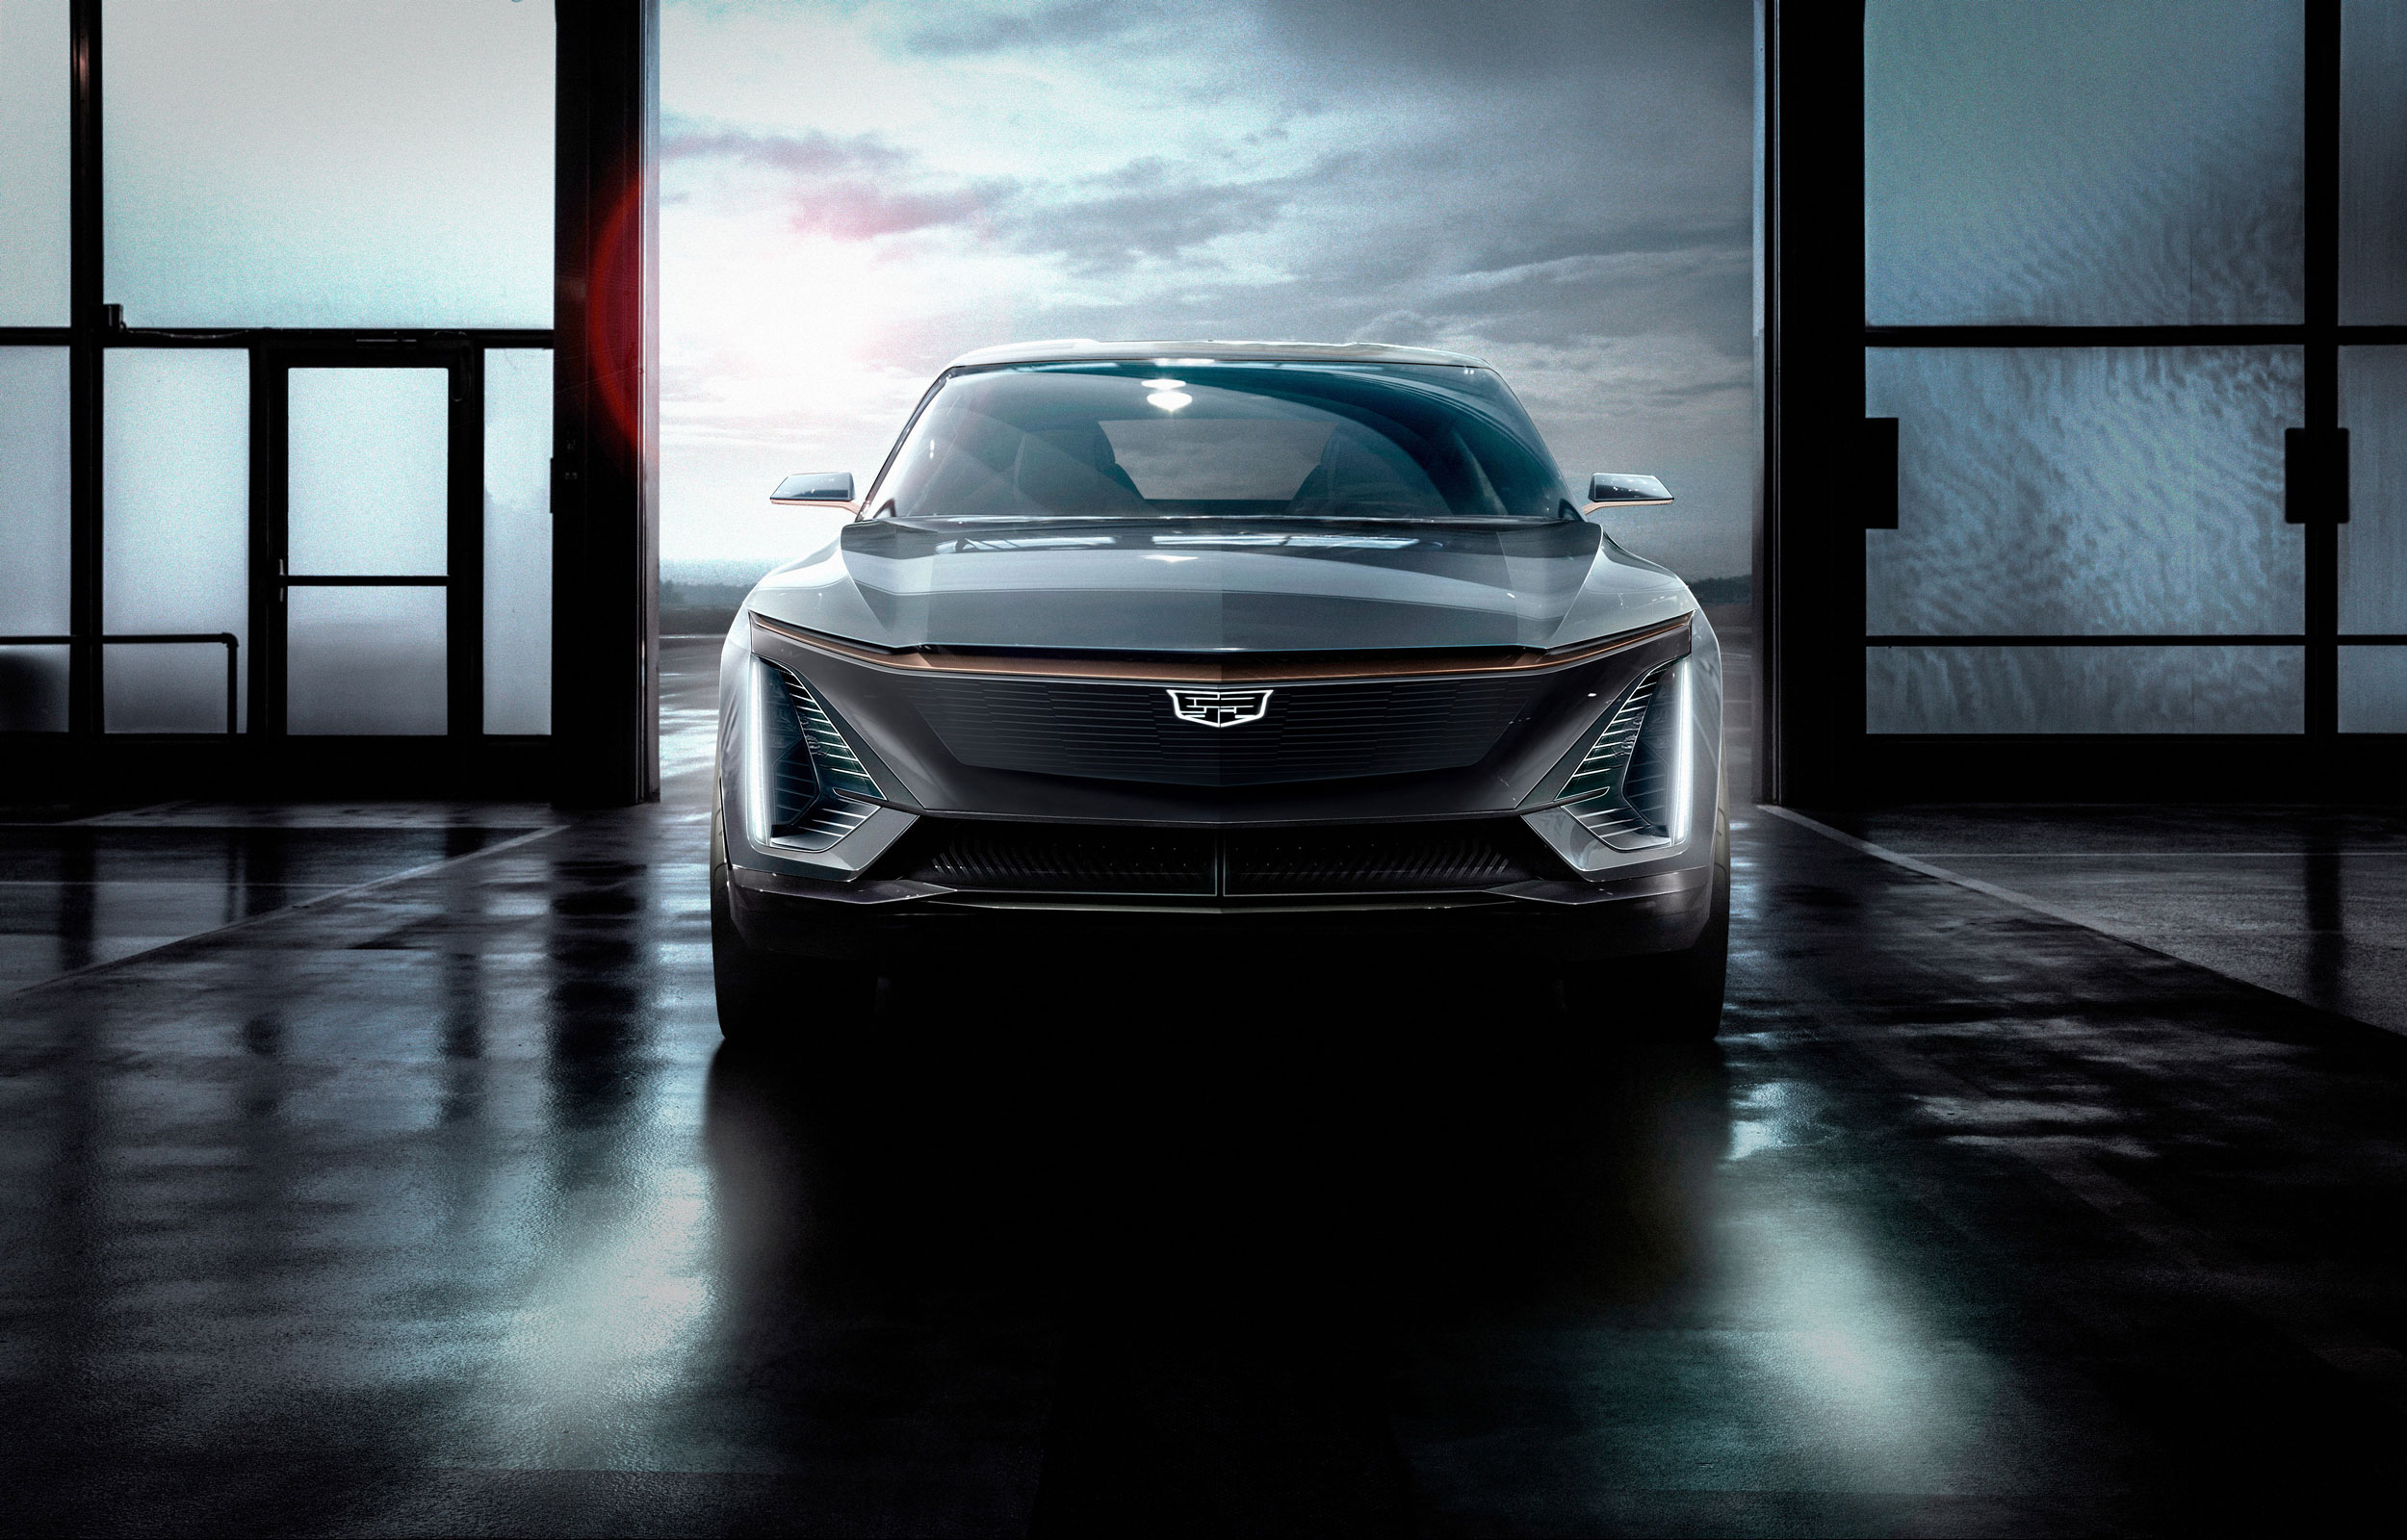 Here is Cadillac's first all-electric vehicle thumbnail